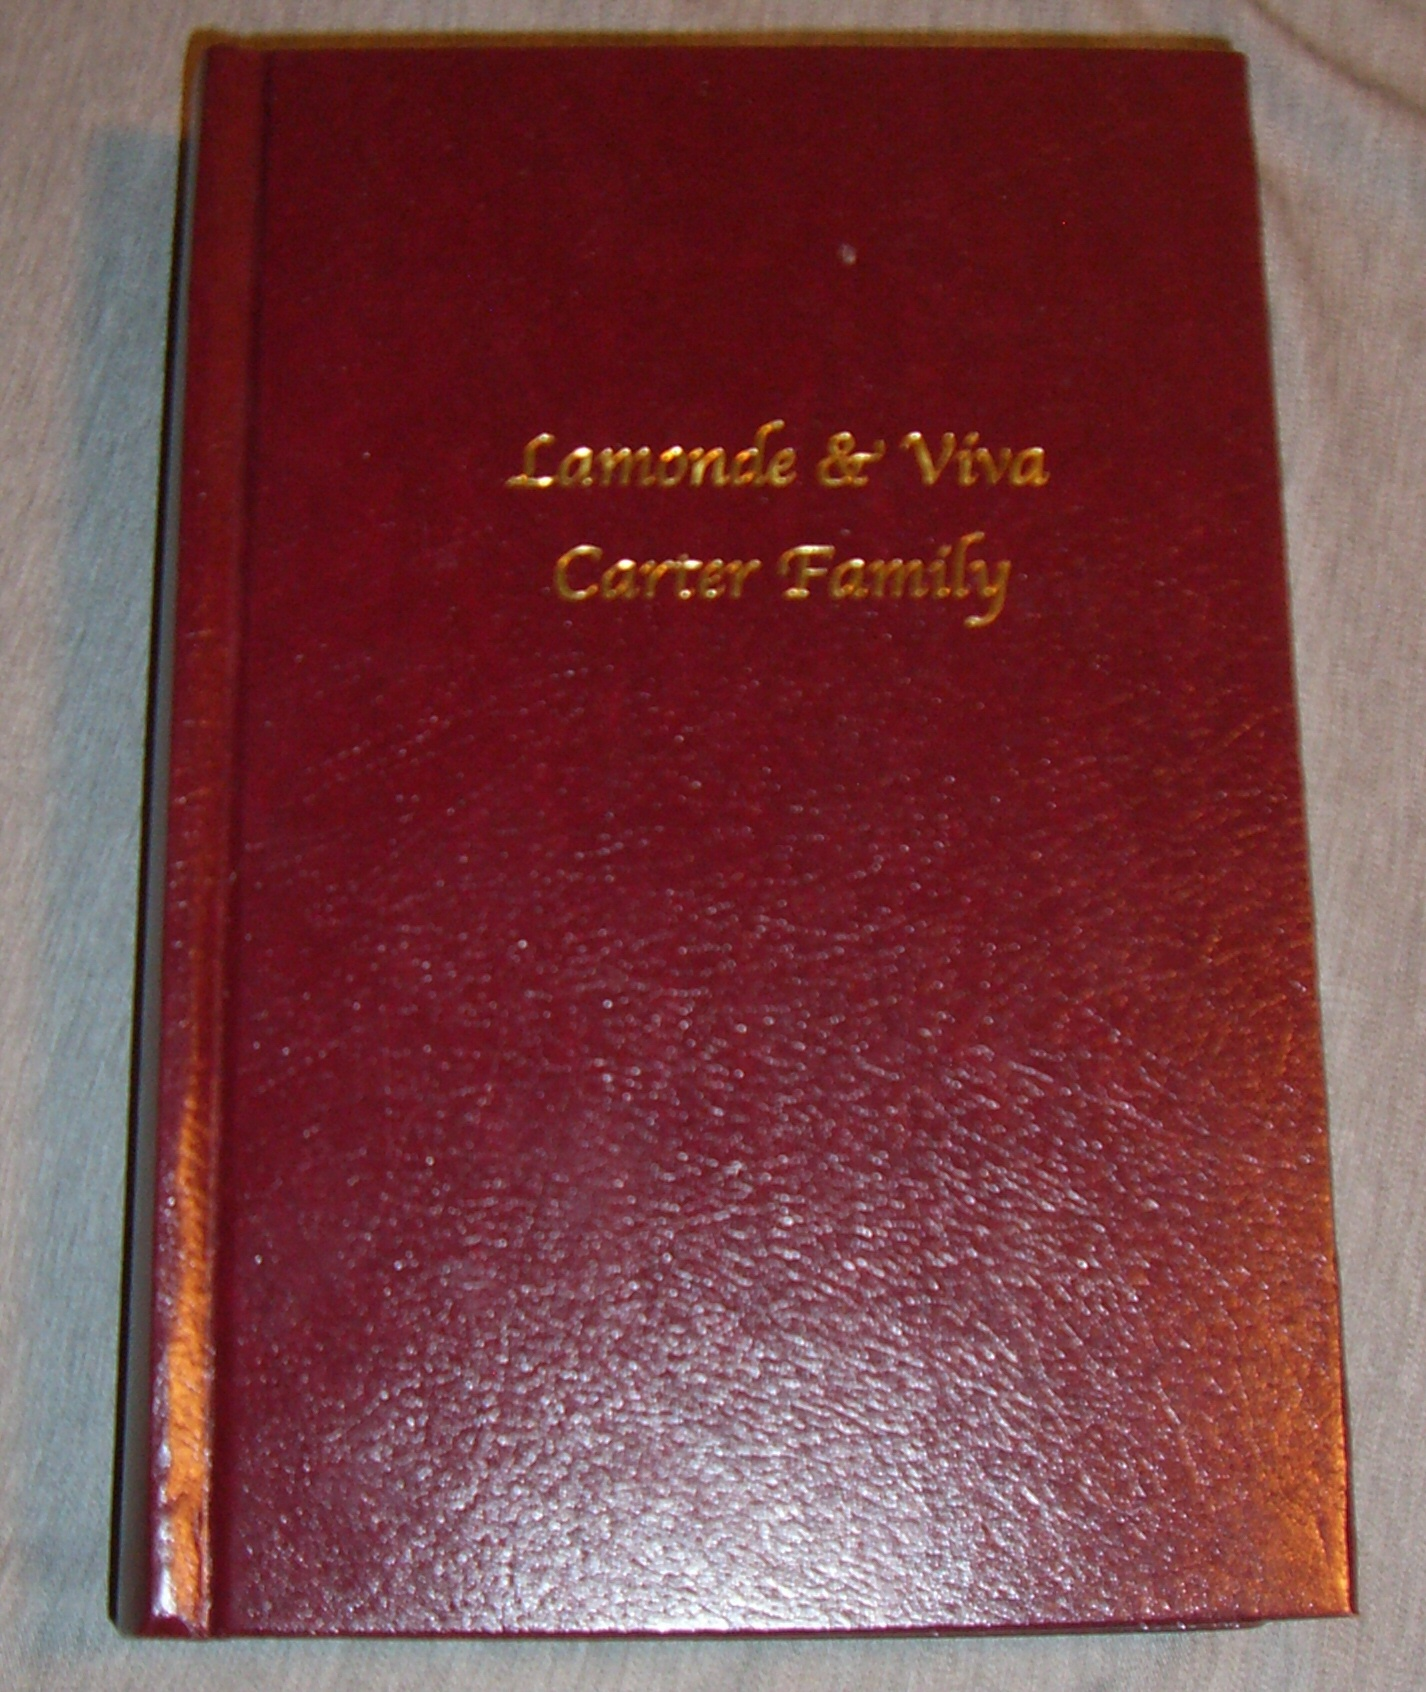 Image for Lamonde & Viva Carter Family